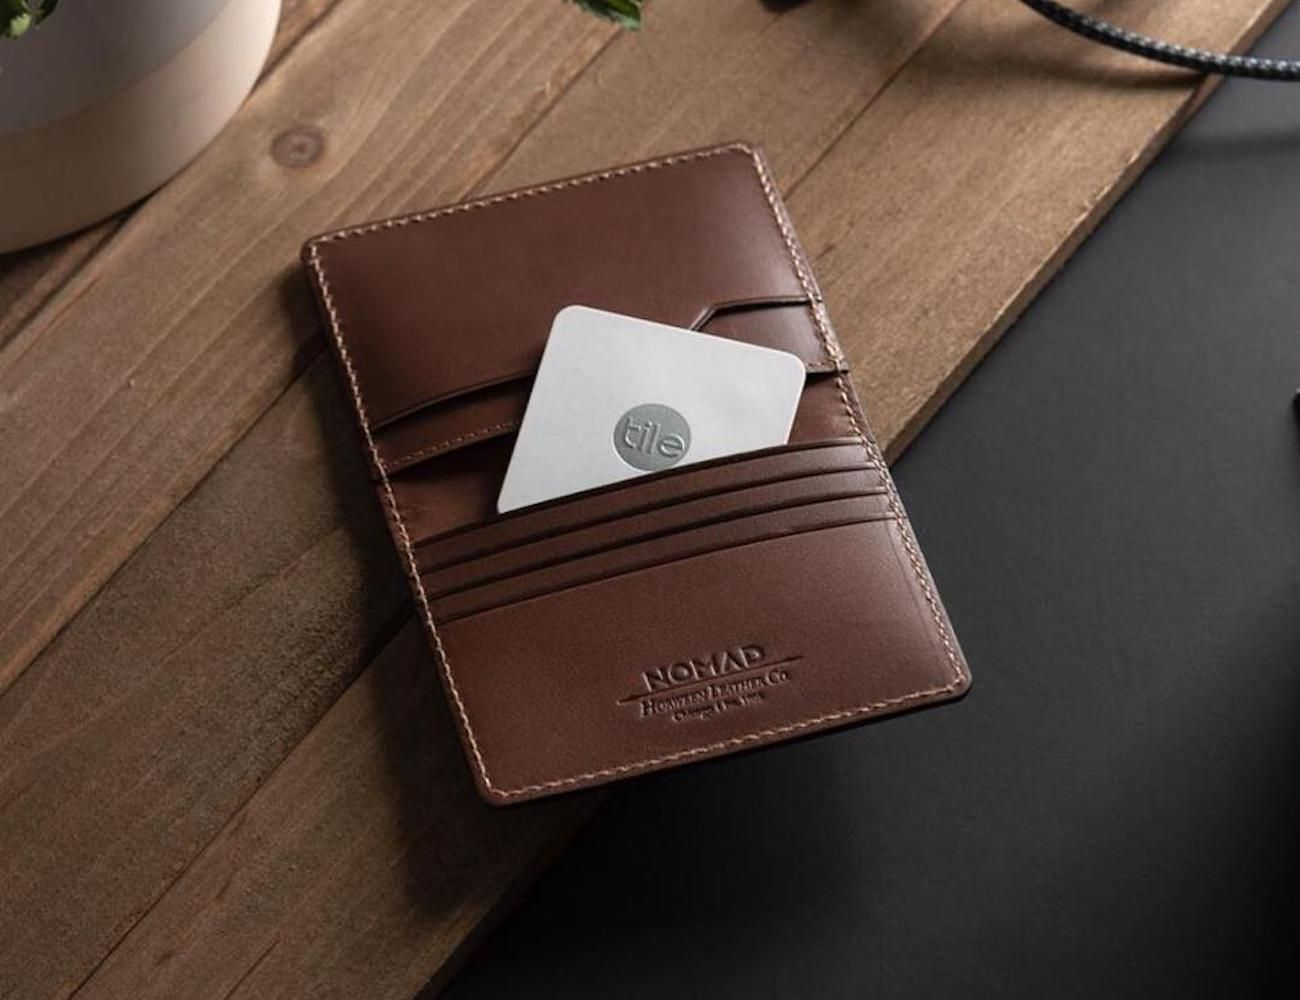 Using advanced crowdsource location and Bluetooth technology, the integrated Tile Slim makes it easy to keep track of your #wallet. #gadgets #bluetoothtechnology